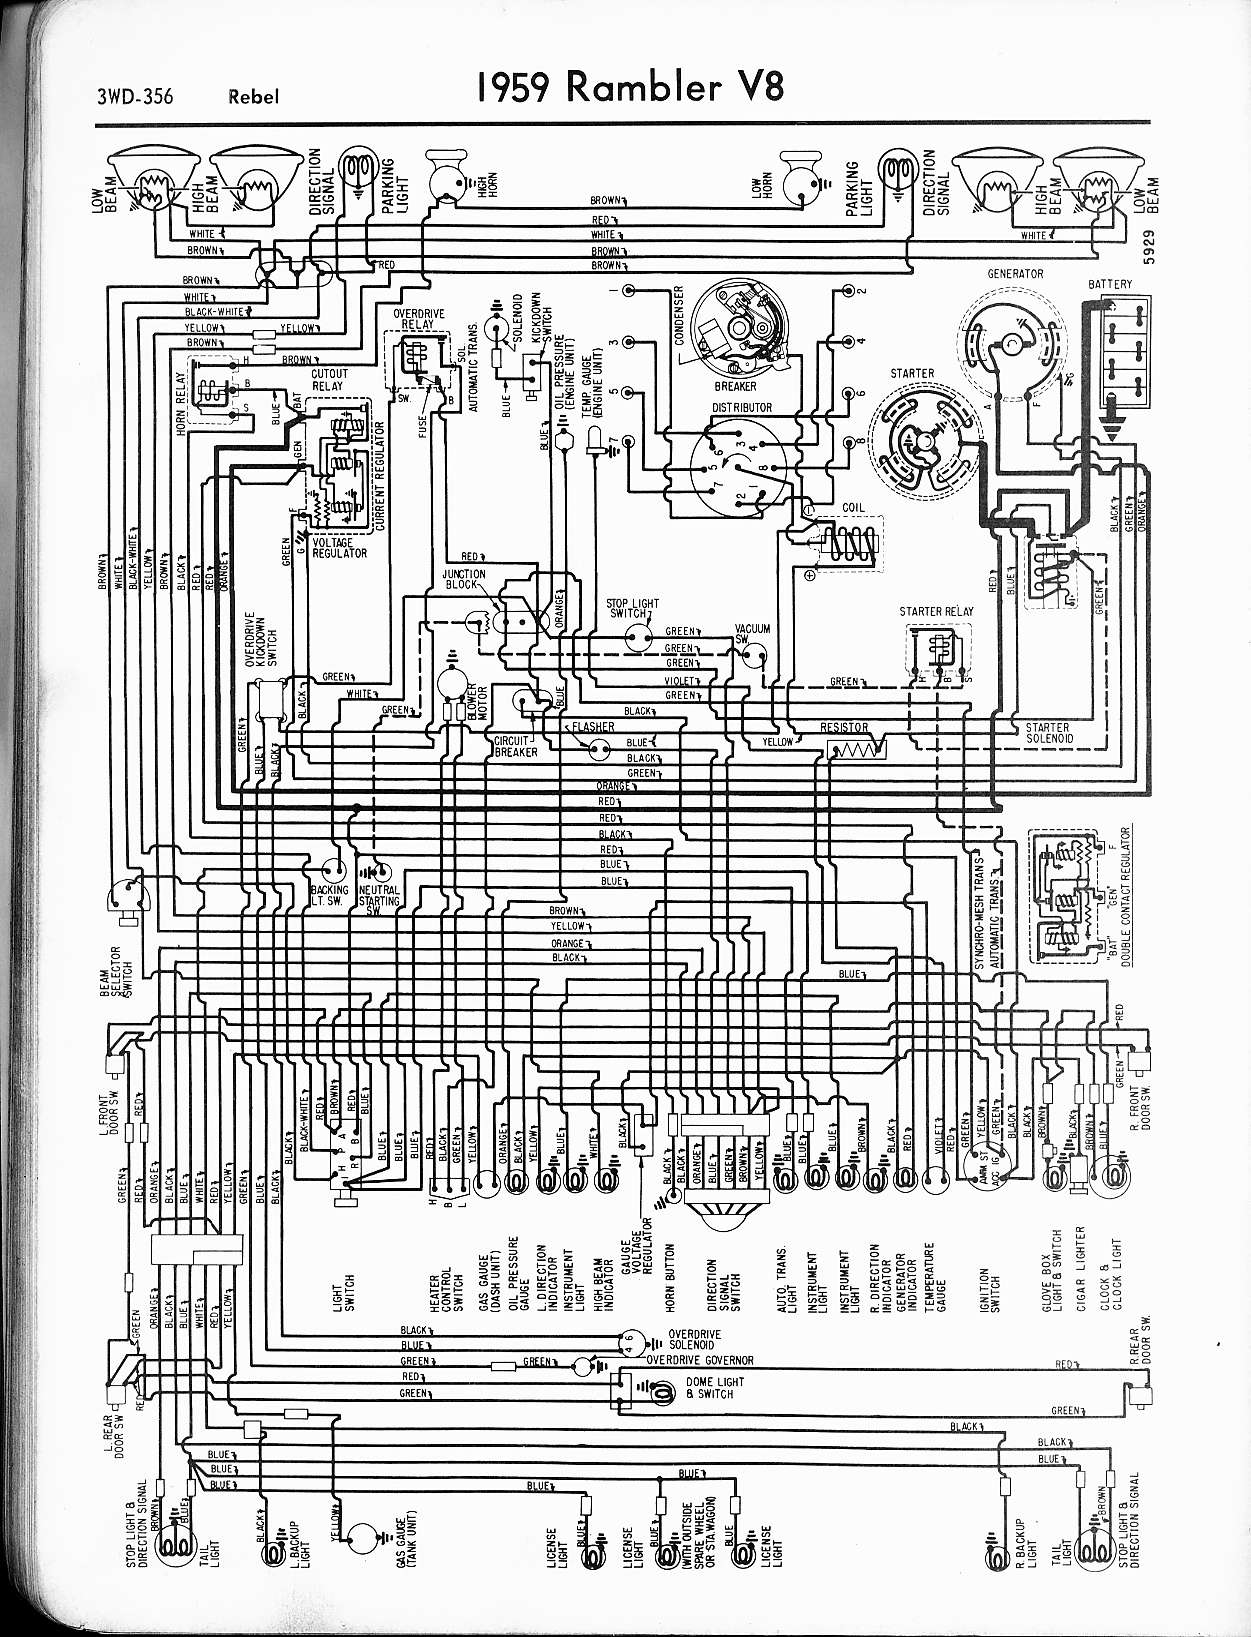 hight resolution of rambler wiring diagrams the old car manual project 1968 amc rambler rebel sst 1959 rambler v8